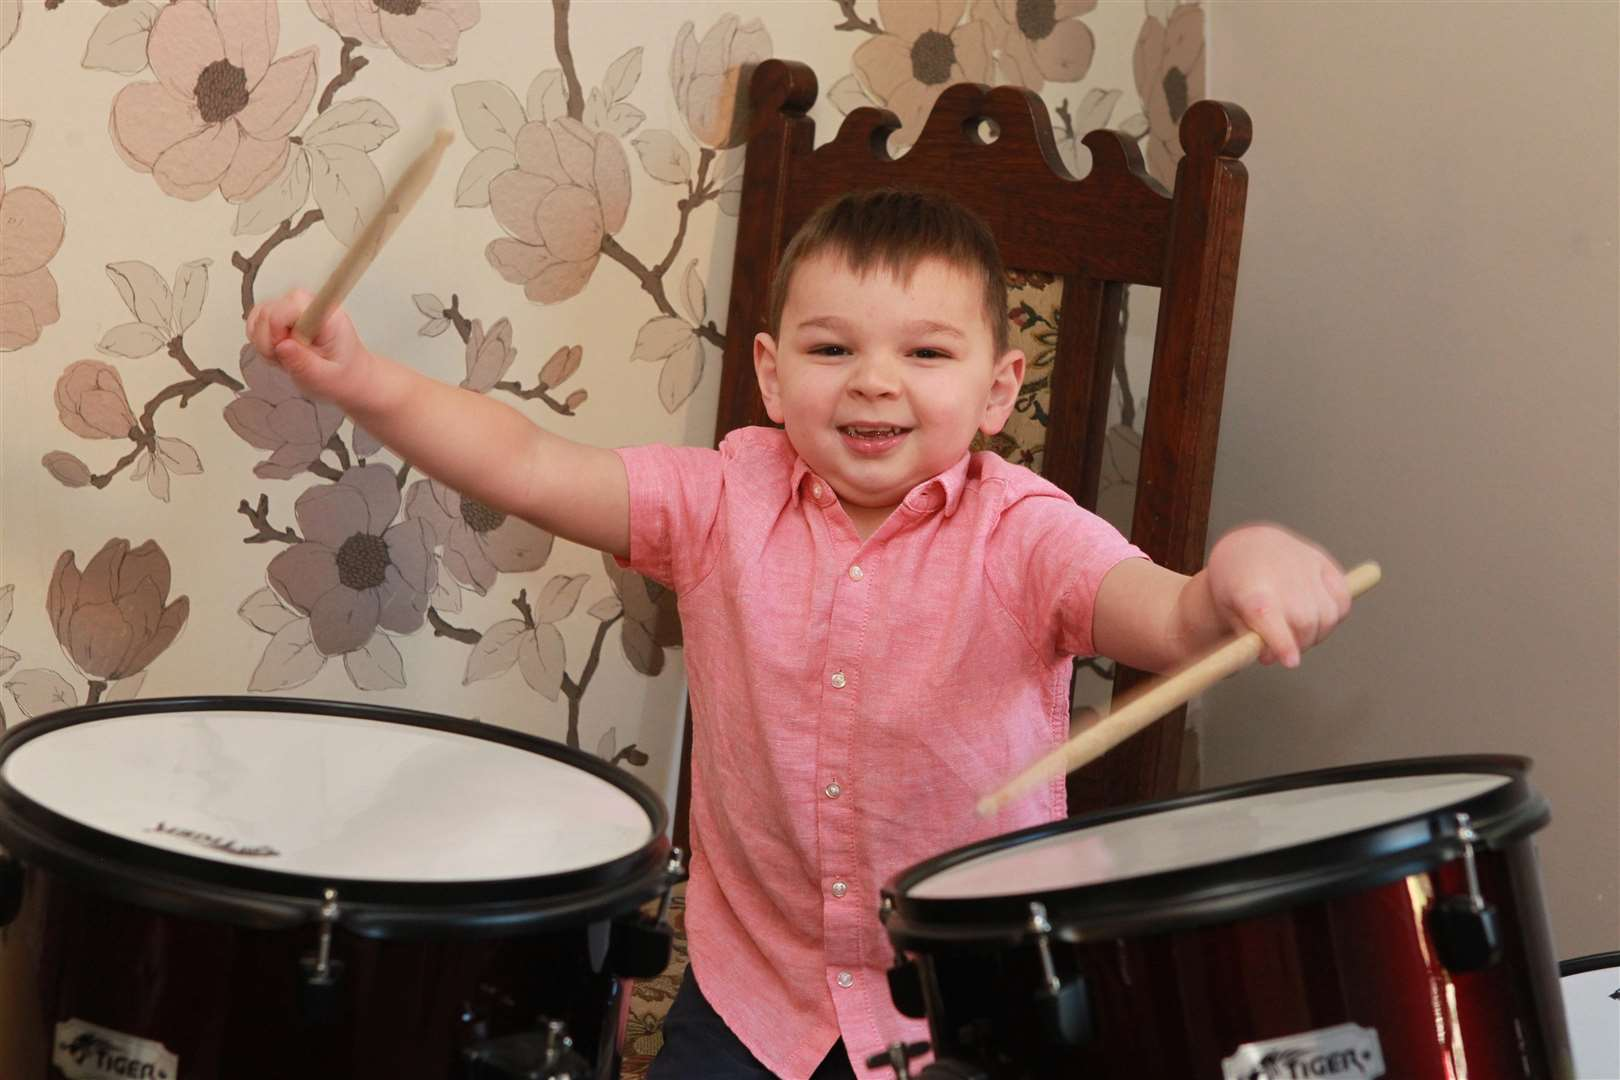 Tony Hudgell, four, playing drums. Picture: John Westhrop